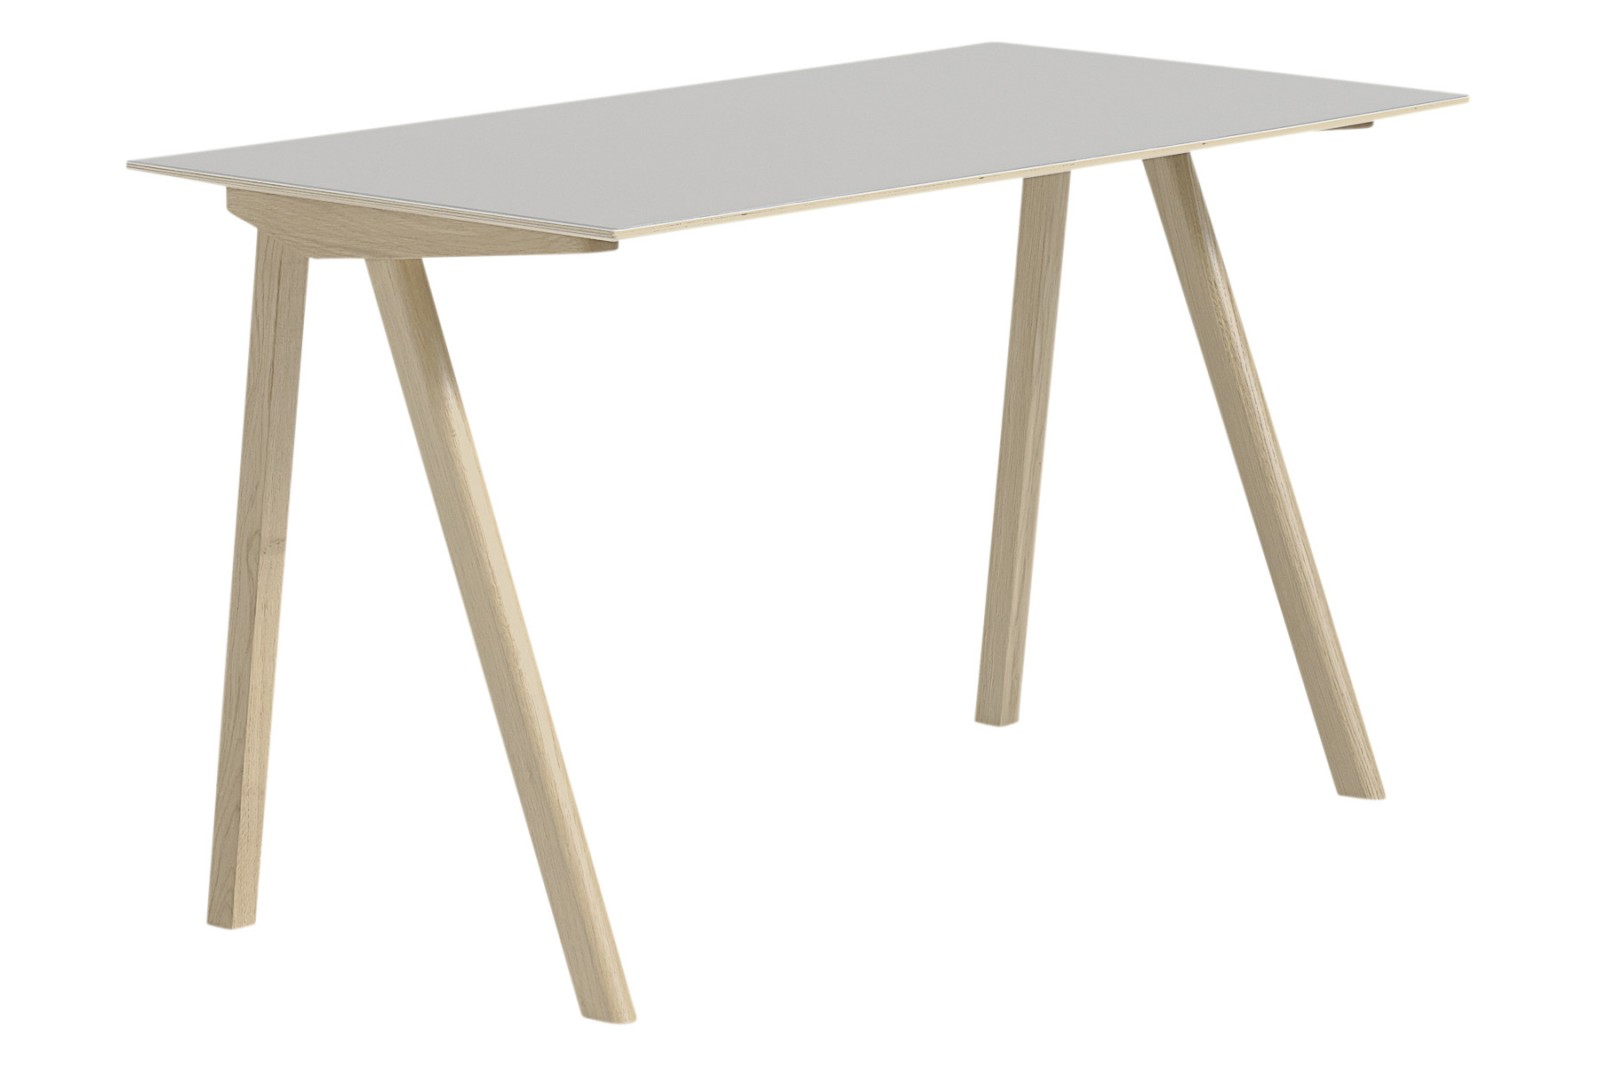 Copenhague Linoleum Top Desk CPH90 Matt Lacquered Solid Oak Base, Off White Linoleum Top